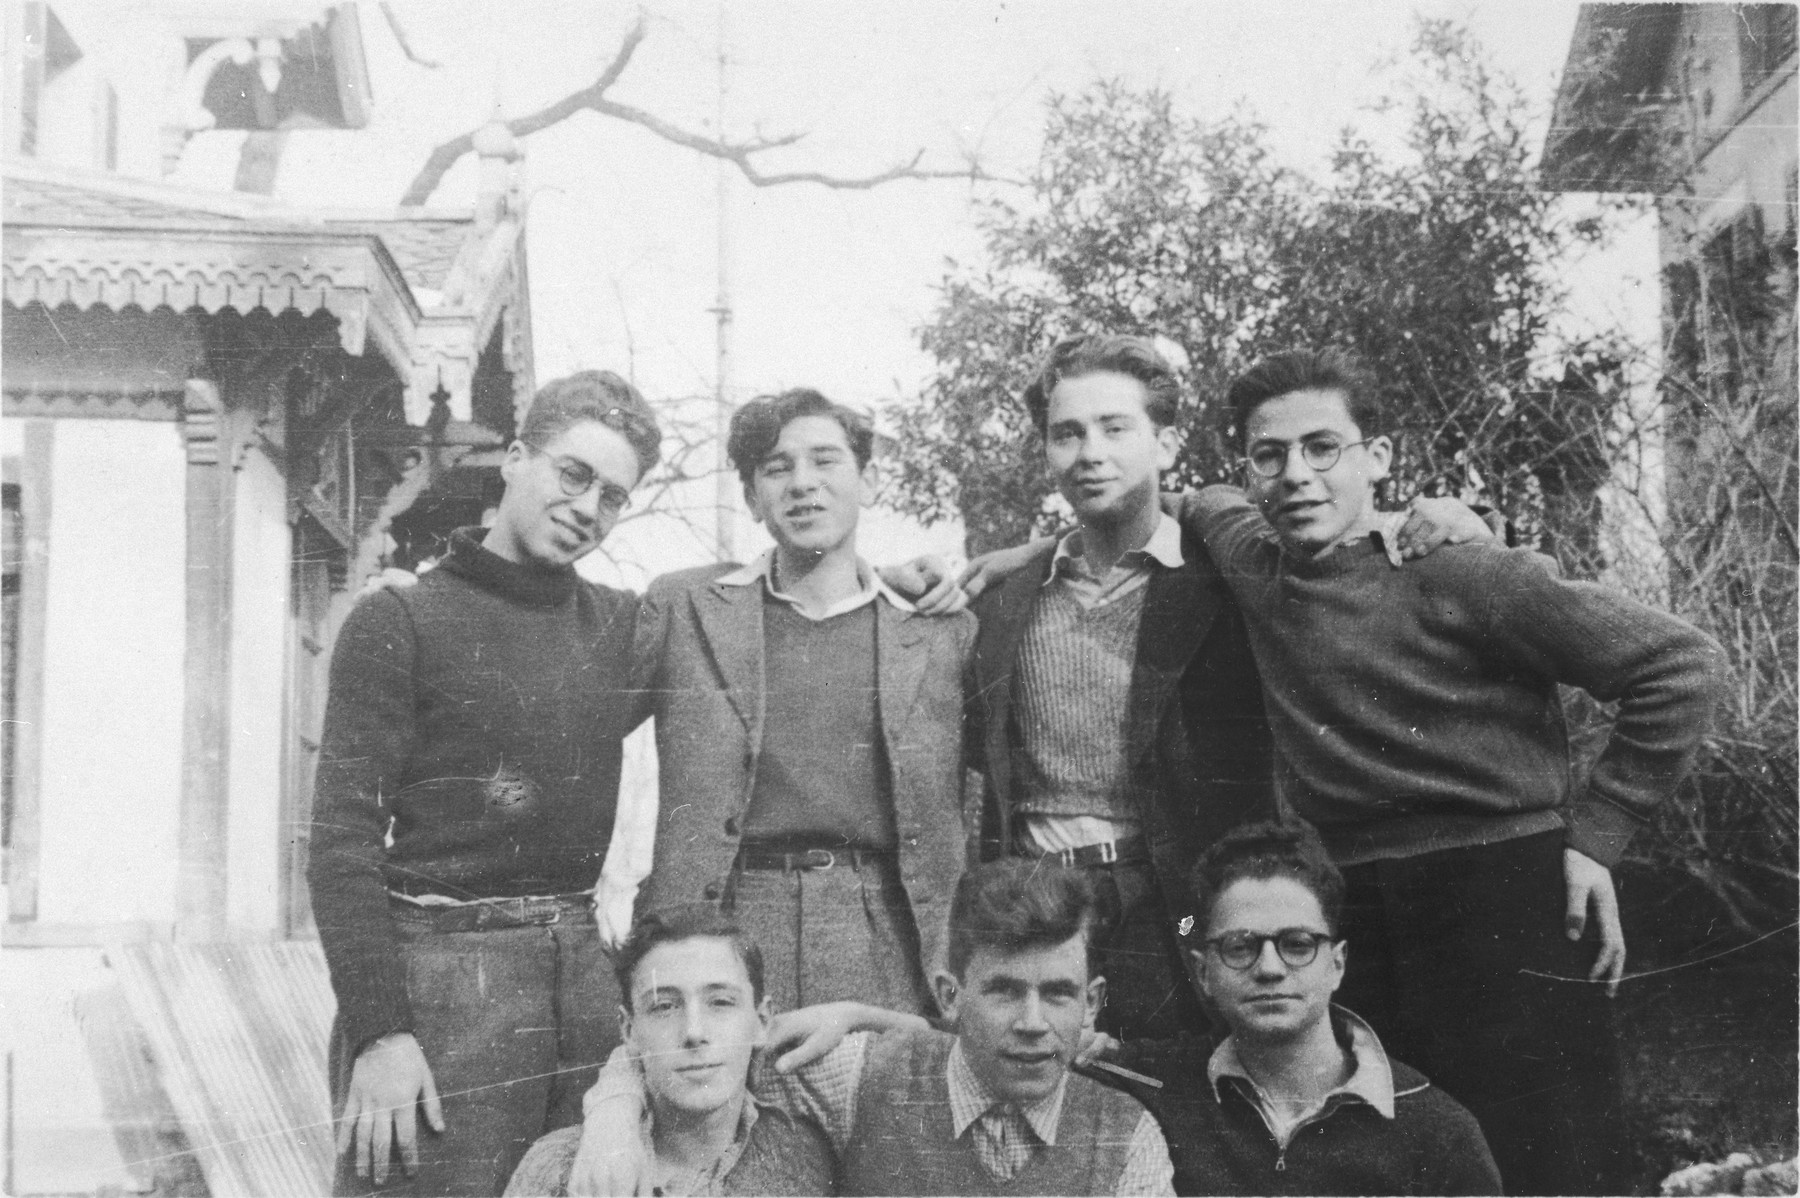 Group portrait of Jewish refugee youth outside the Murailles children's home in Geneva.  Pictured from left to right are: (front row) Alex Alter, Ludwig Mayer and Manfred Filipson; (second row) Kurt Frost, Otto Weiner, Yankel ?, and Theo Brenig.